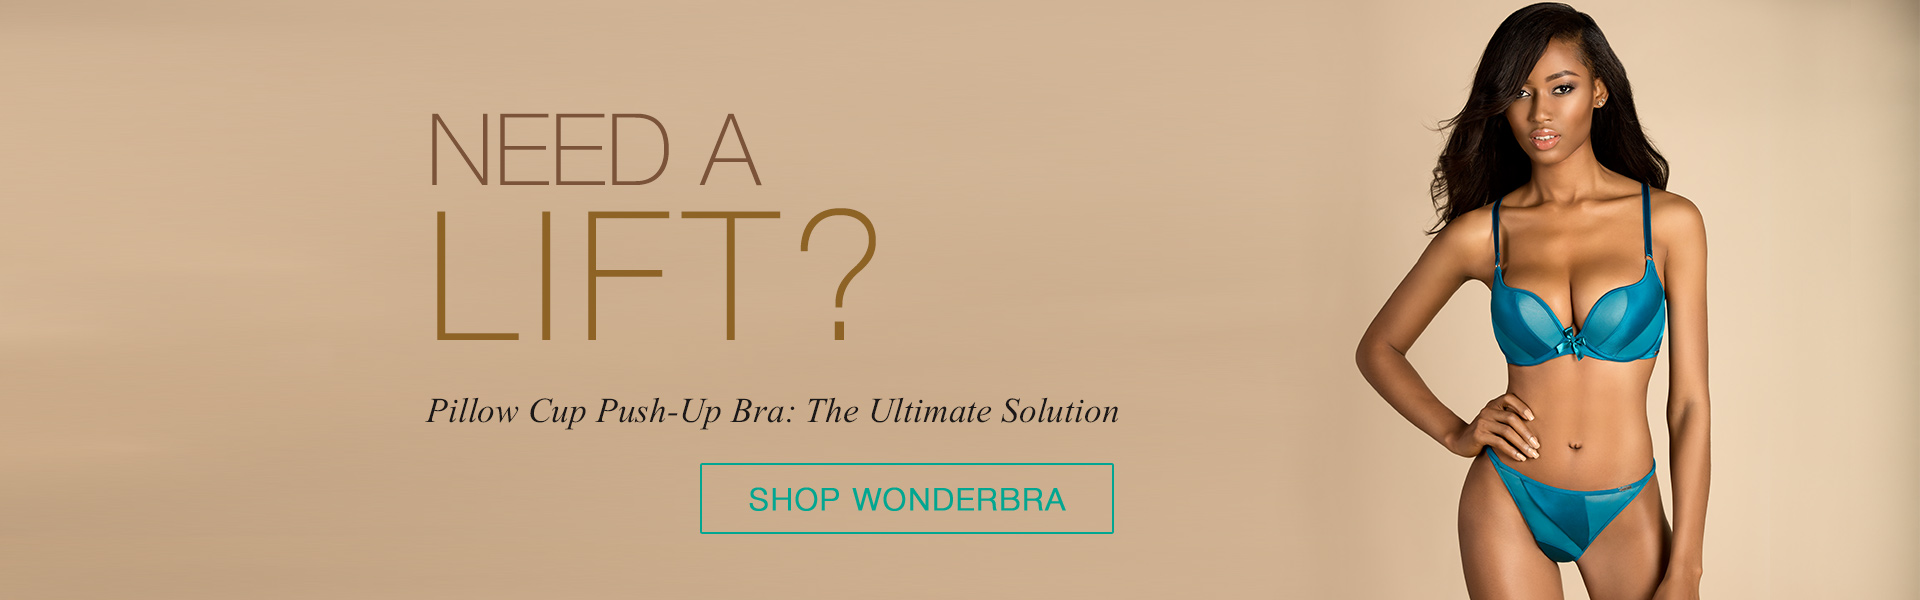 the ultimate solution push up bra lulu lingerie